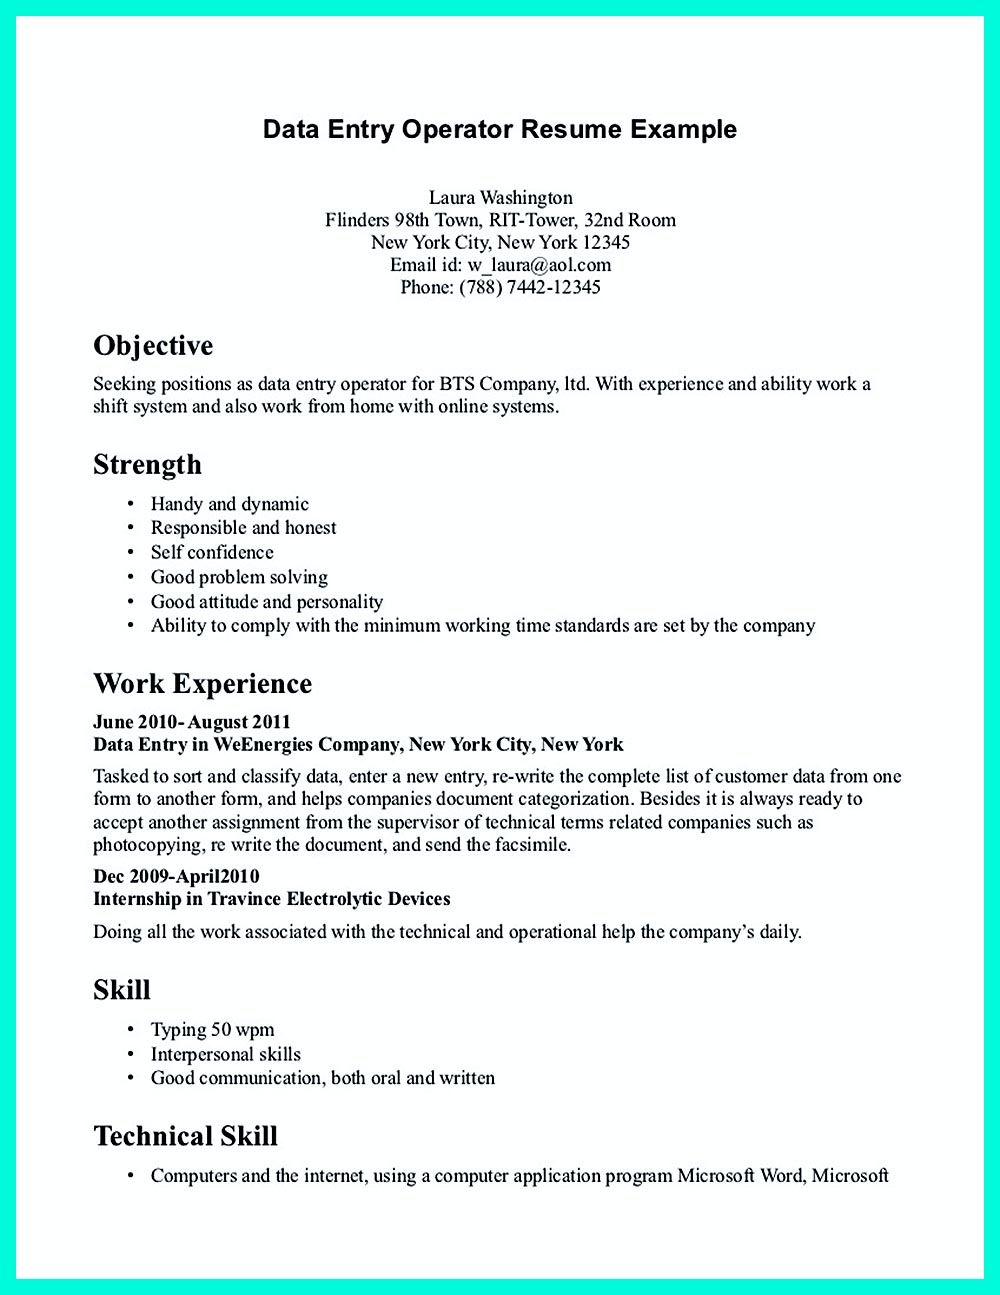 Your data entry resume is the essential marketing key to get the job ...